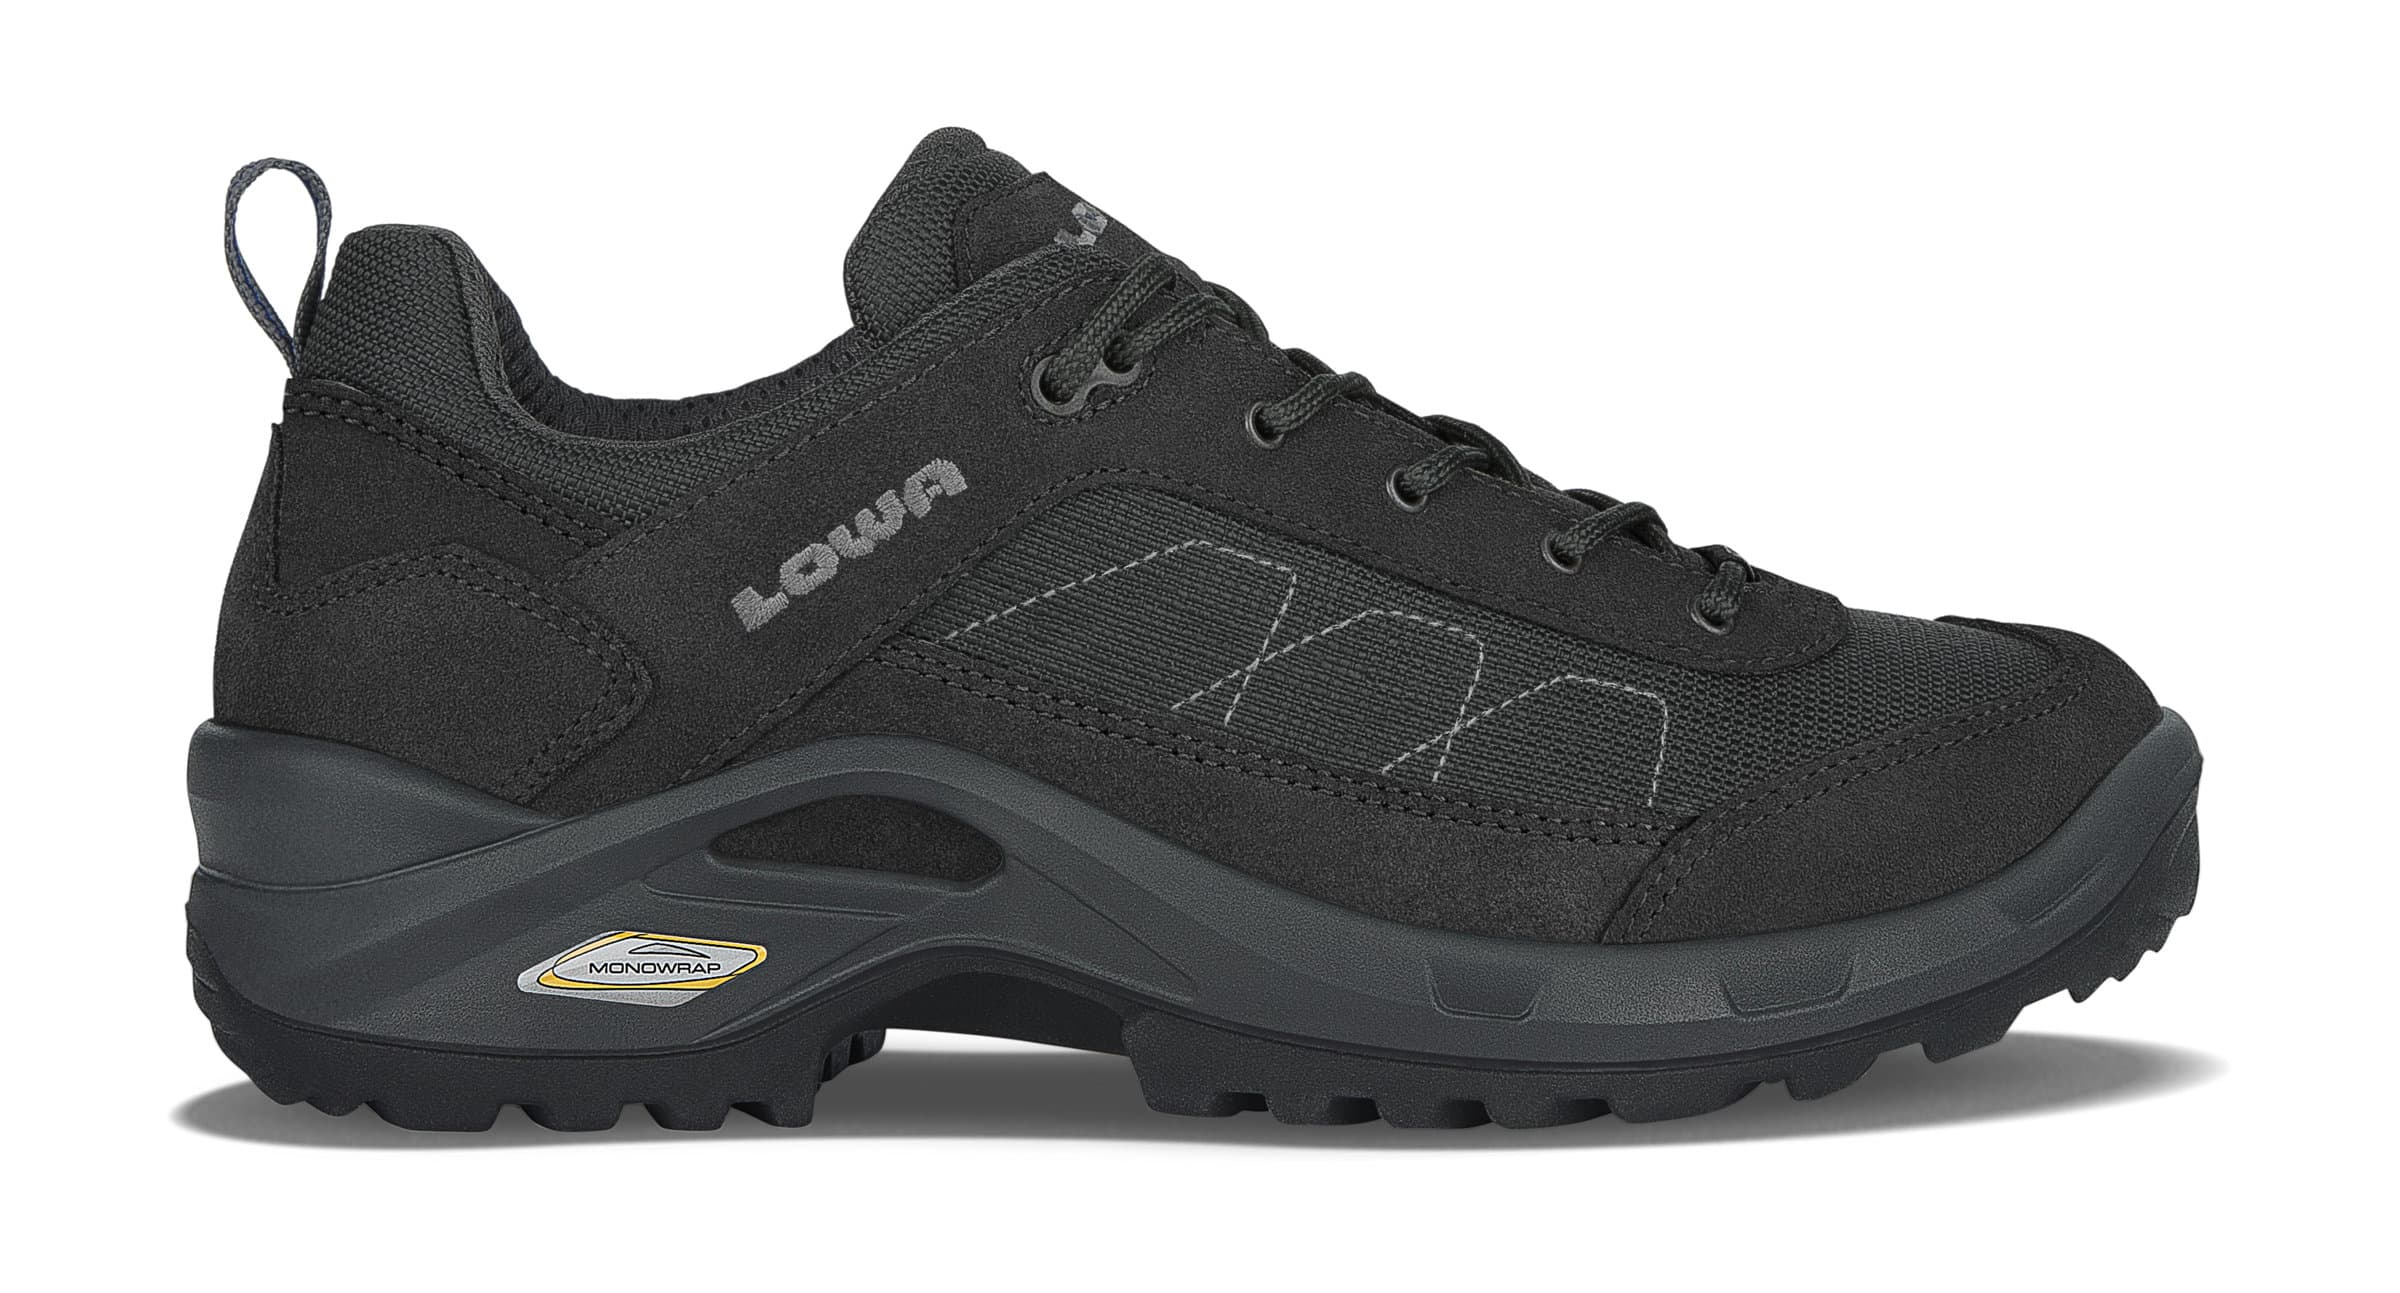 Lowa Taurus II GTX Lo Chaussures polyvalentes pour homme